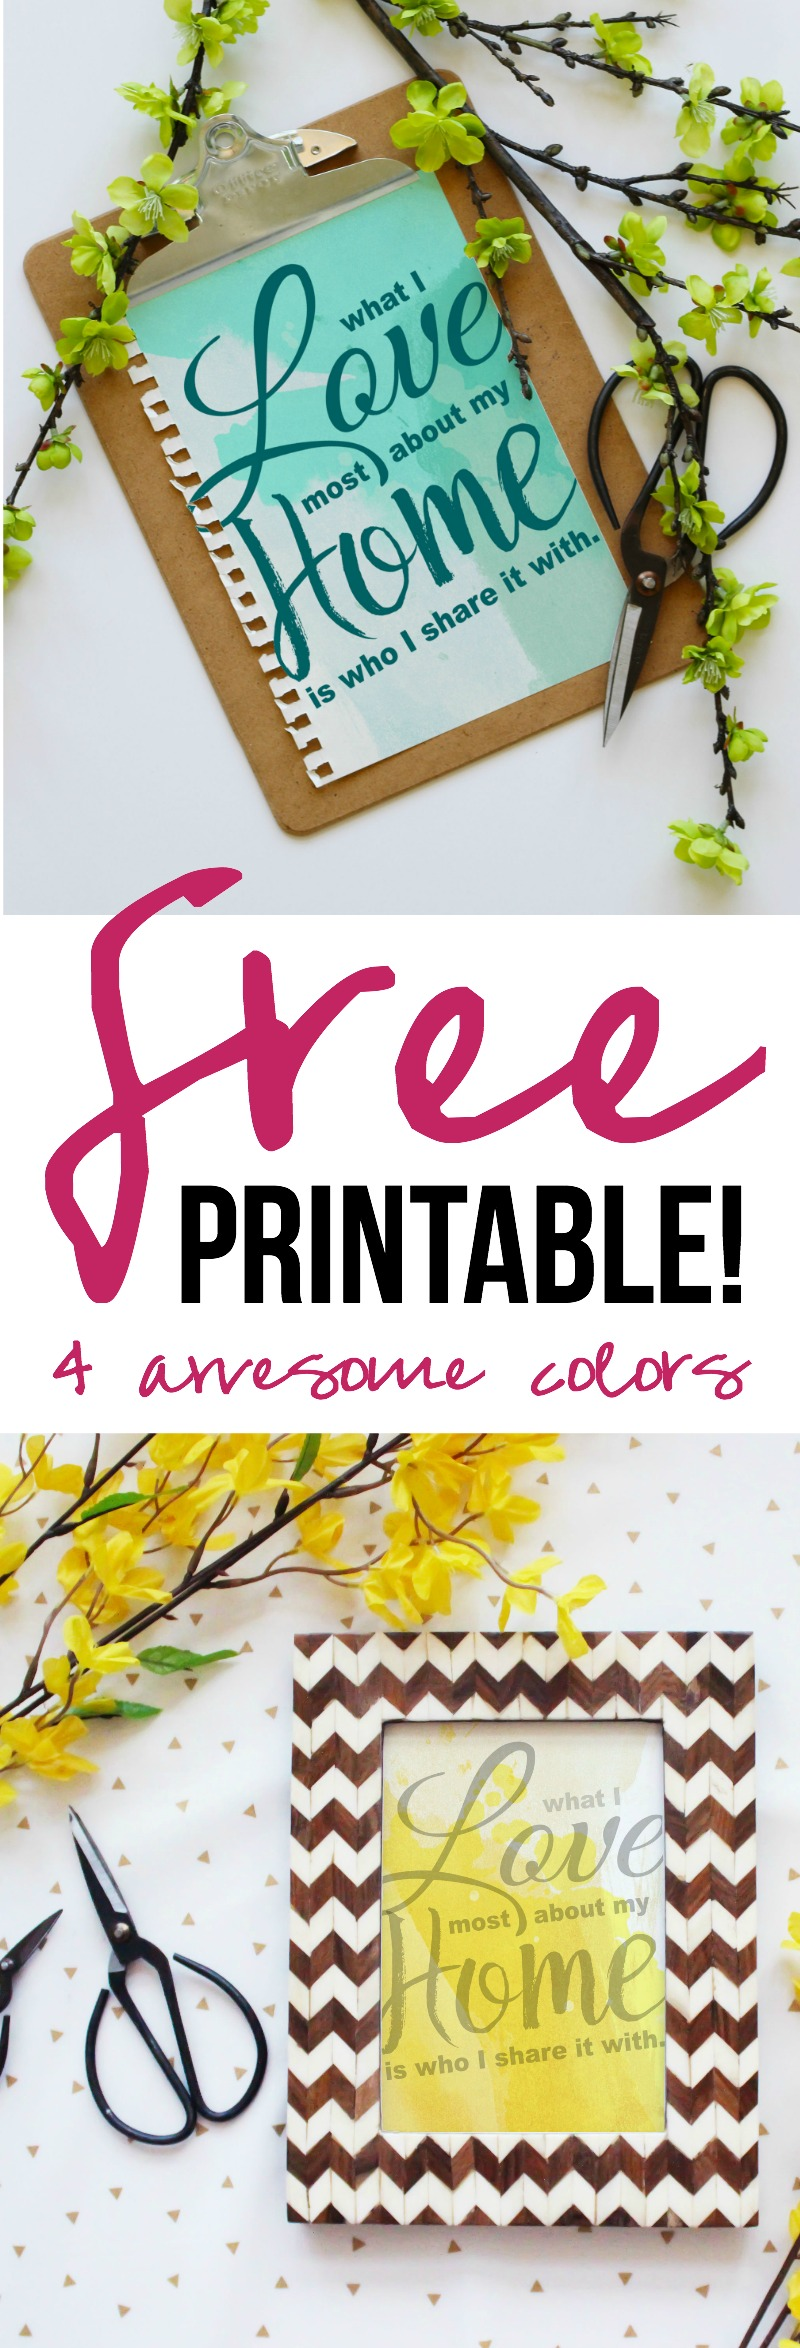 What I Love most about my Home is... (Free Printables... 4 Awesome Colors! )